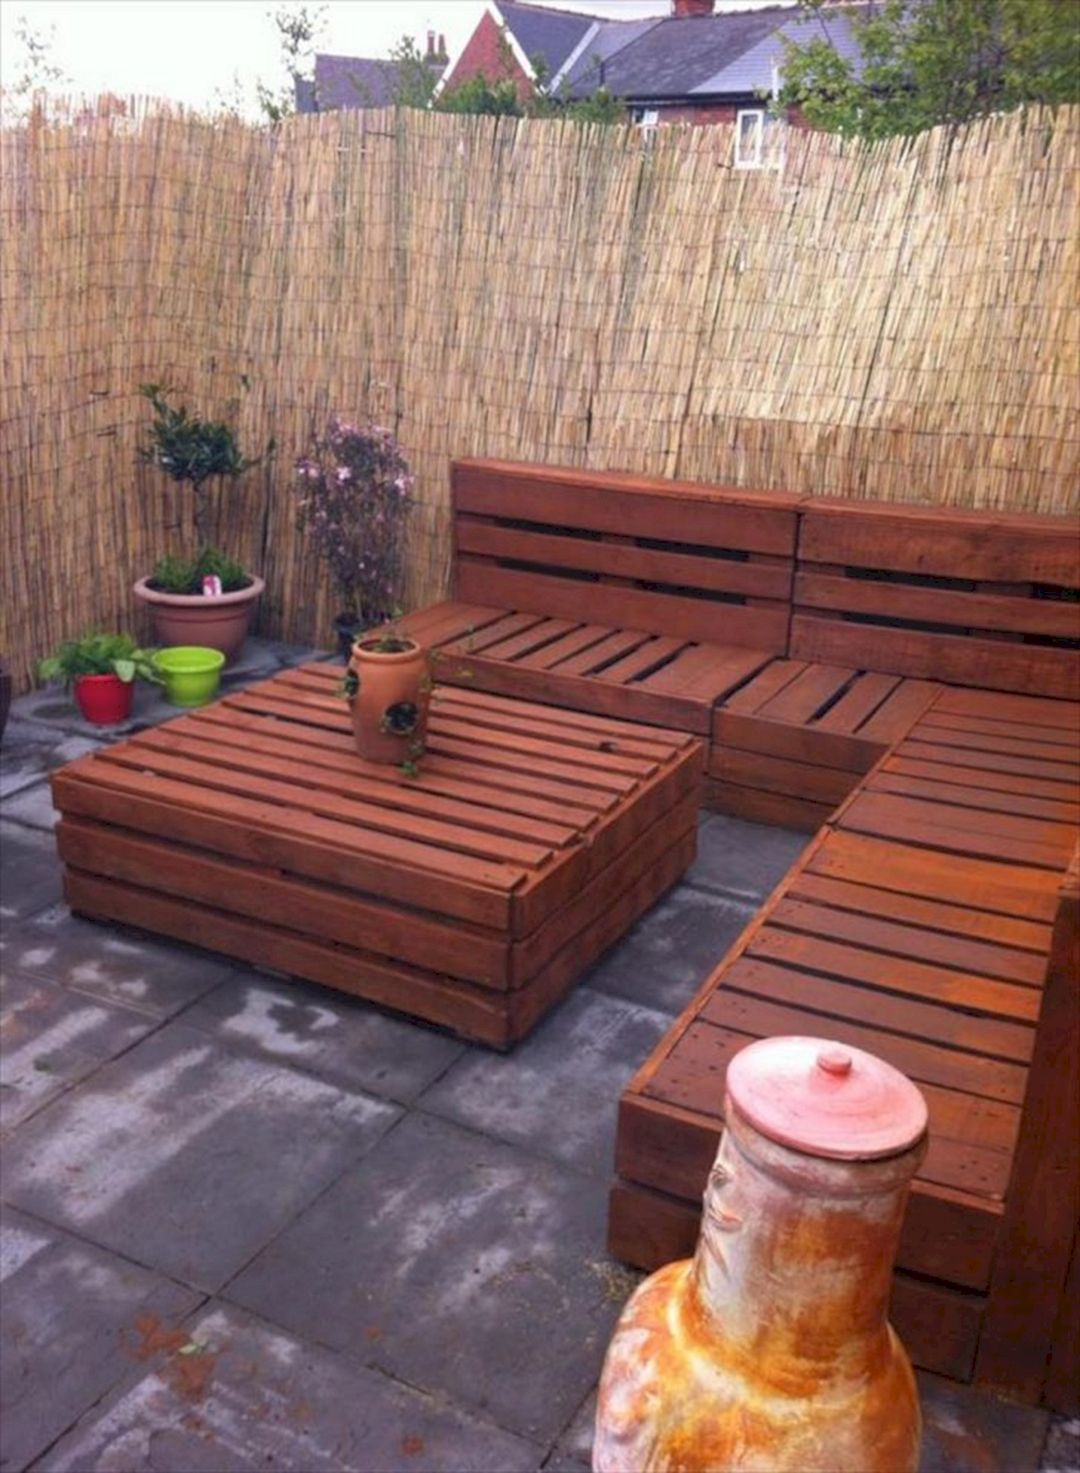 Awesome ideas for pallets patio couches again if you choose wood for the patio sitting then save a bundle of money by using pallet wood you can make